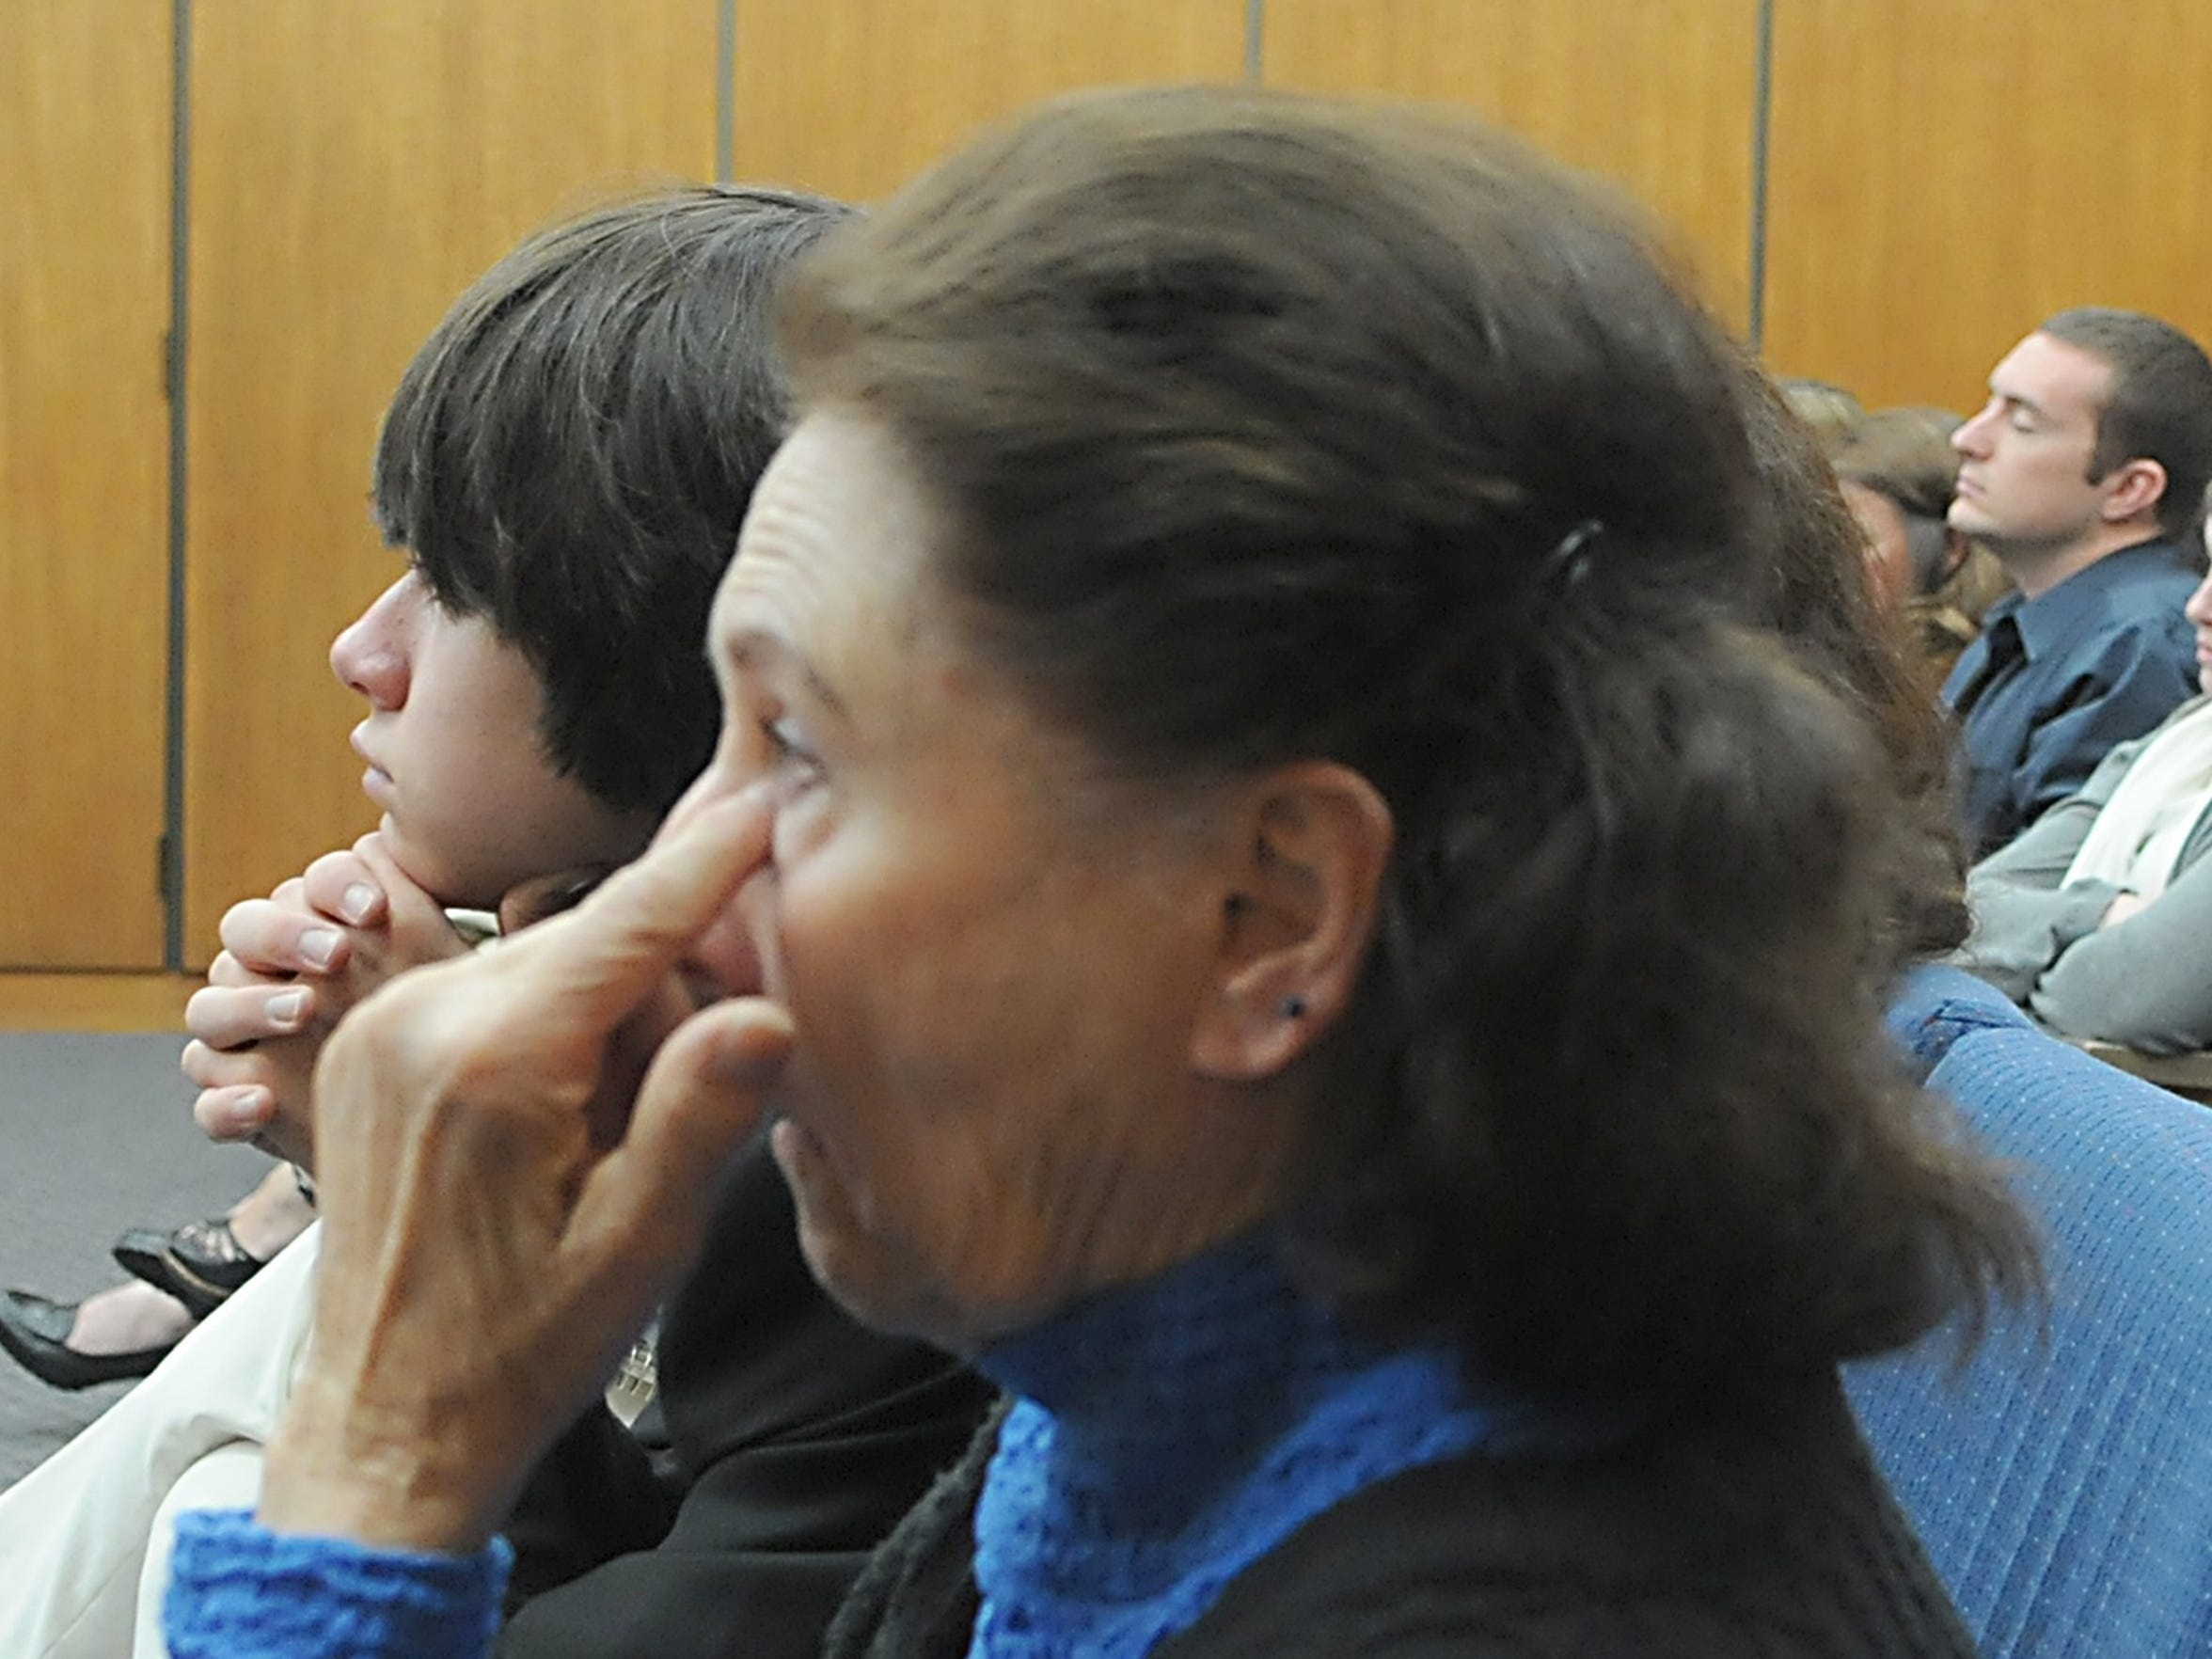 Far left, Brighton Denison sits next to his grandmother Barbara Zunino, Brianna Denison's grandmother during closing arguments Wednesday, May 26, 2010.